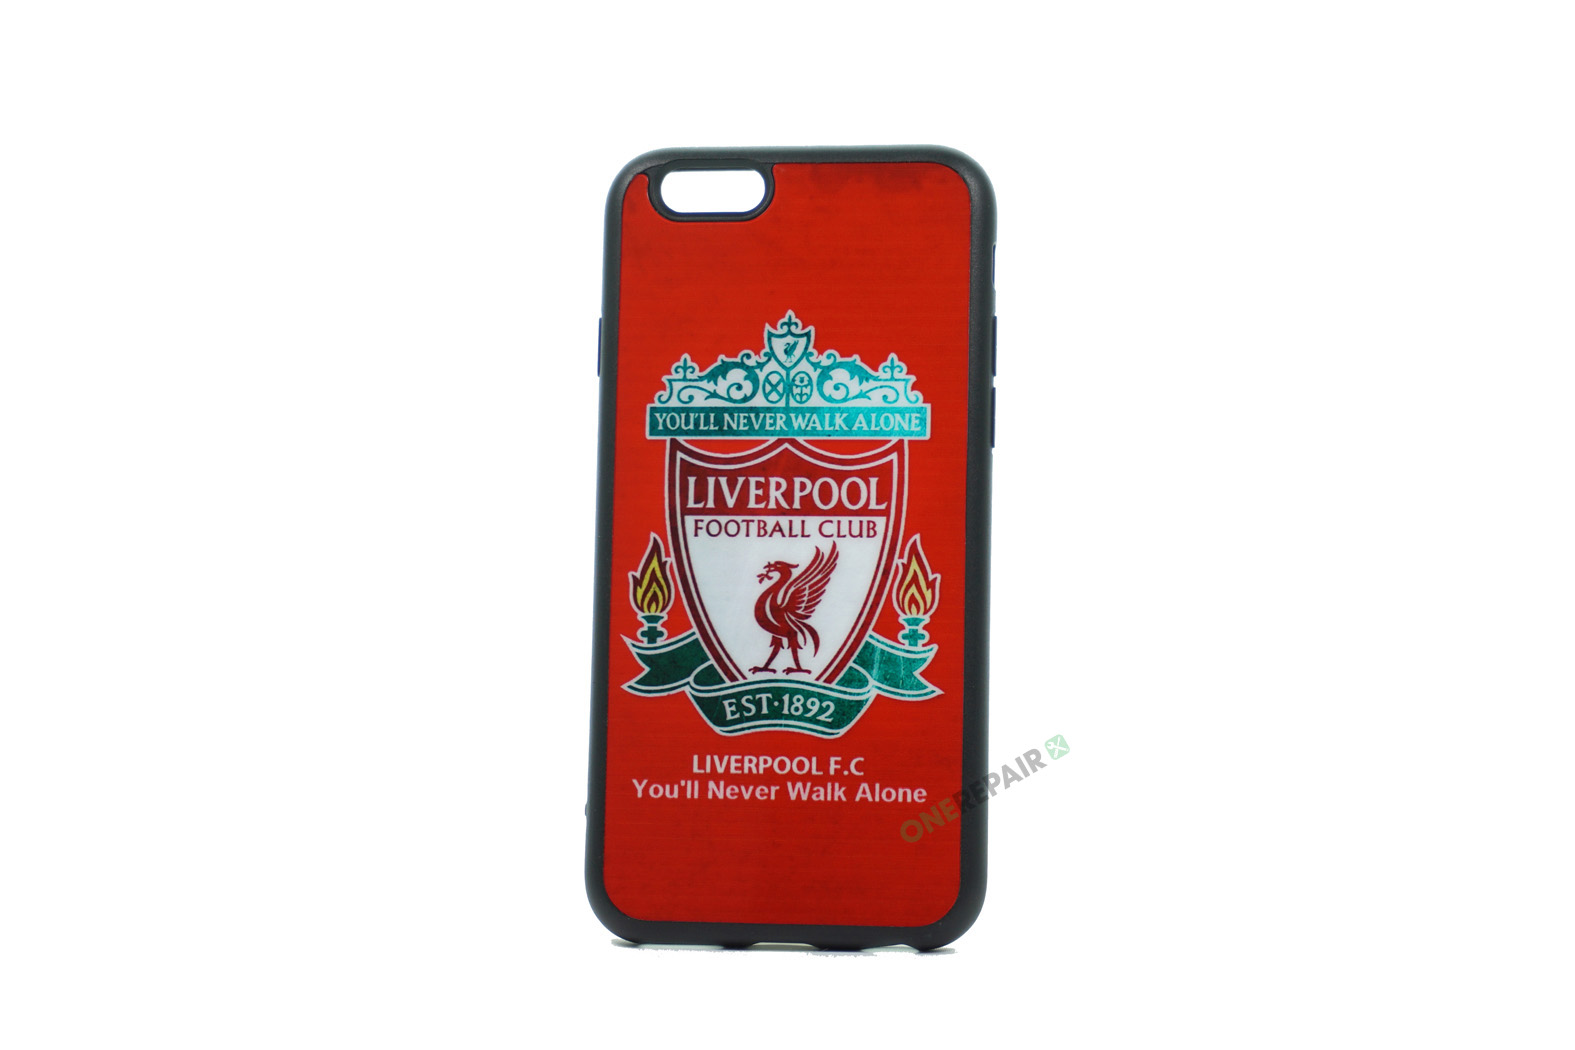 350601_iPhone_6_6S_Fodbold_Cover_Liverpool_Red_OneRepair_00001